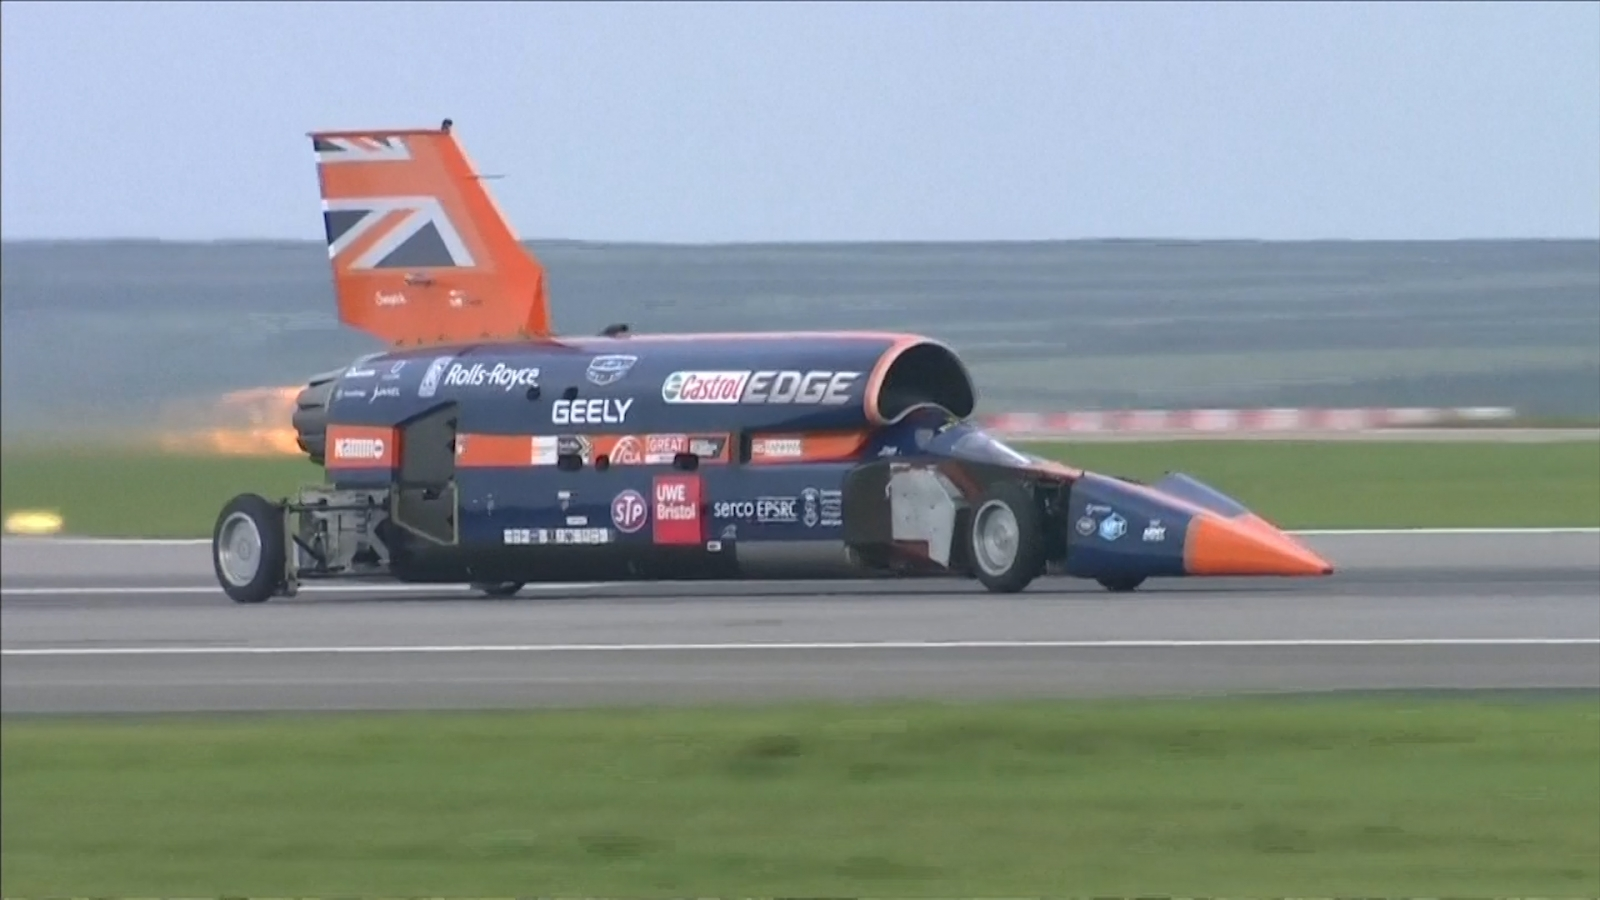 bloodhound-supersonic-car-aiming-to-break-1000mph-passes-first-test-run